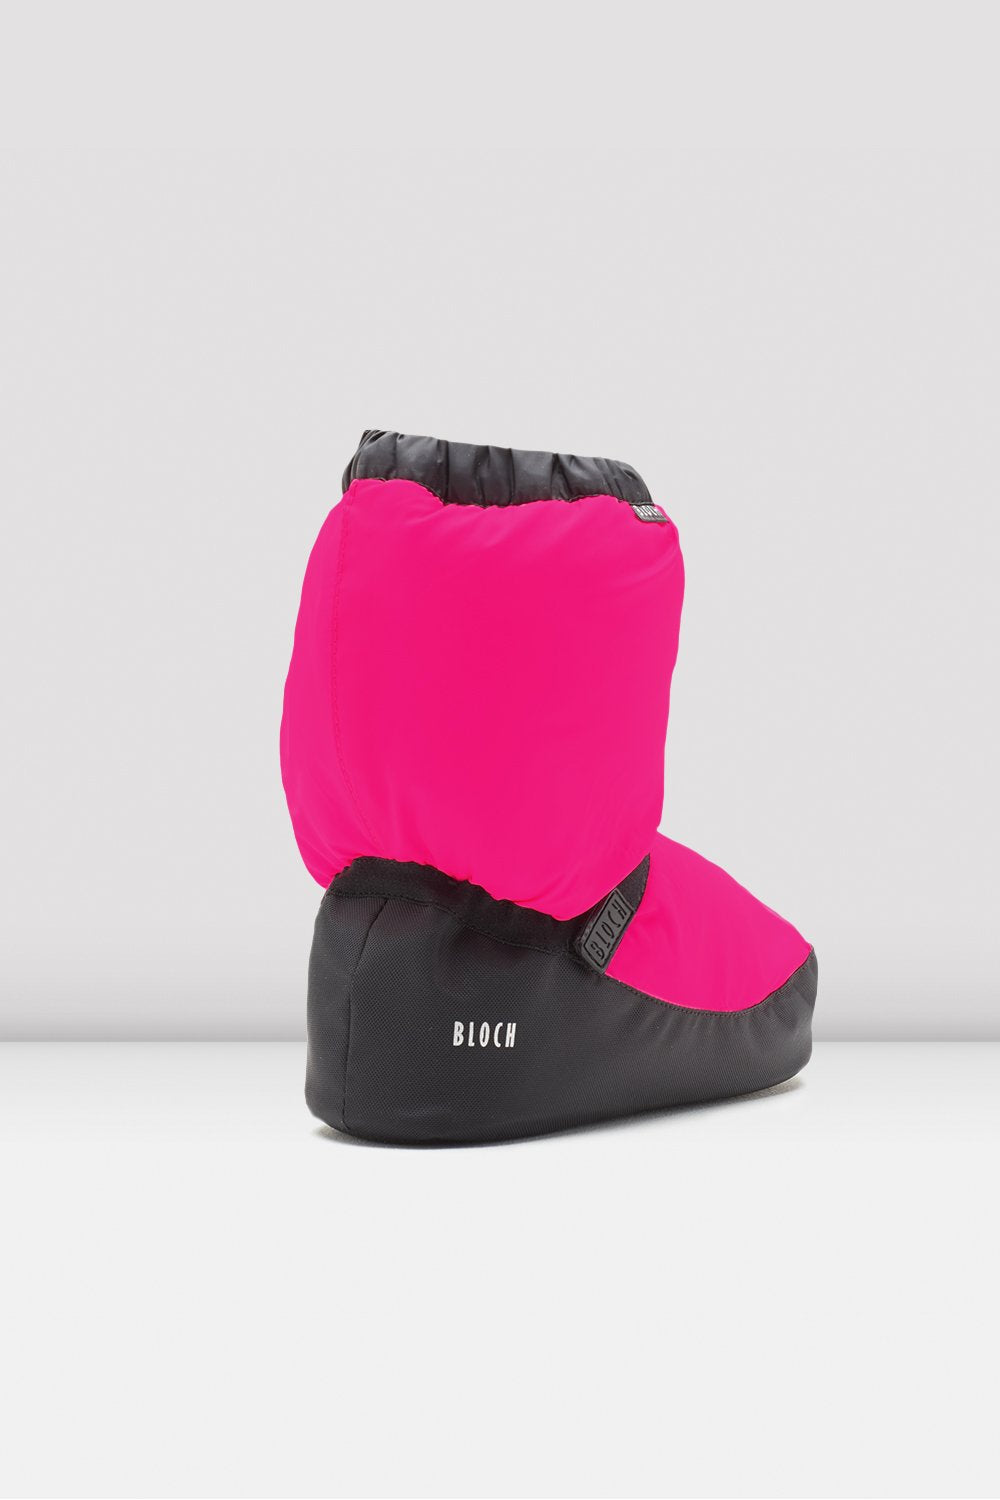 Fluorescent pink nylon Bloch Childrens Warm Up Booties single shoe side view focus on toe of shoe